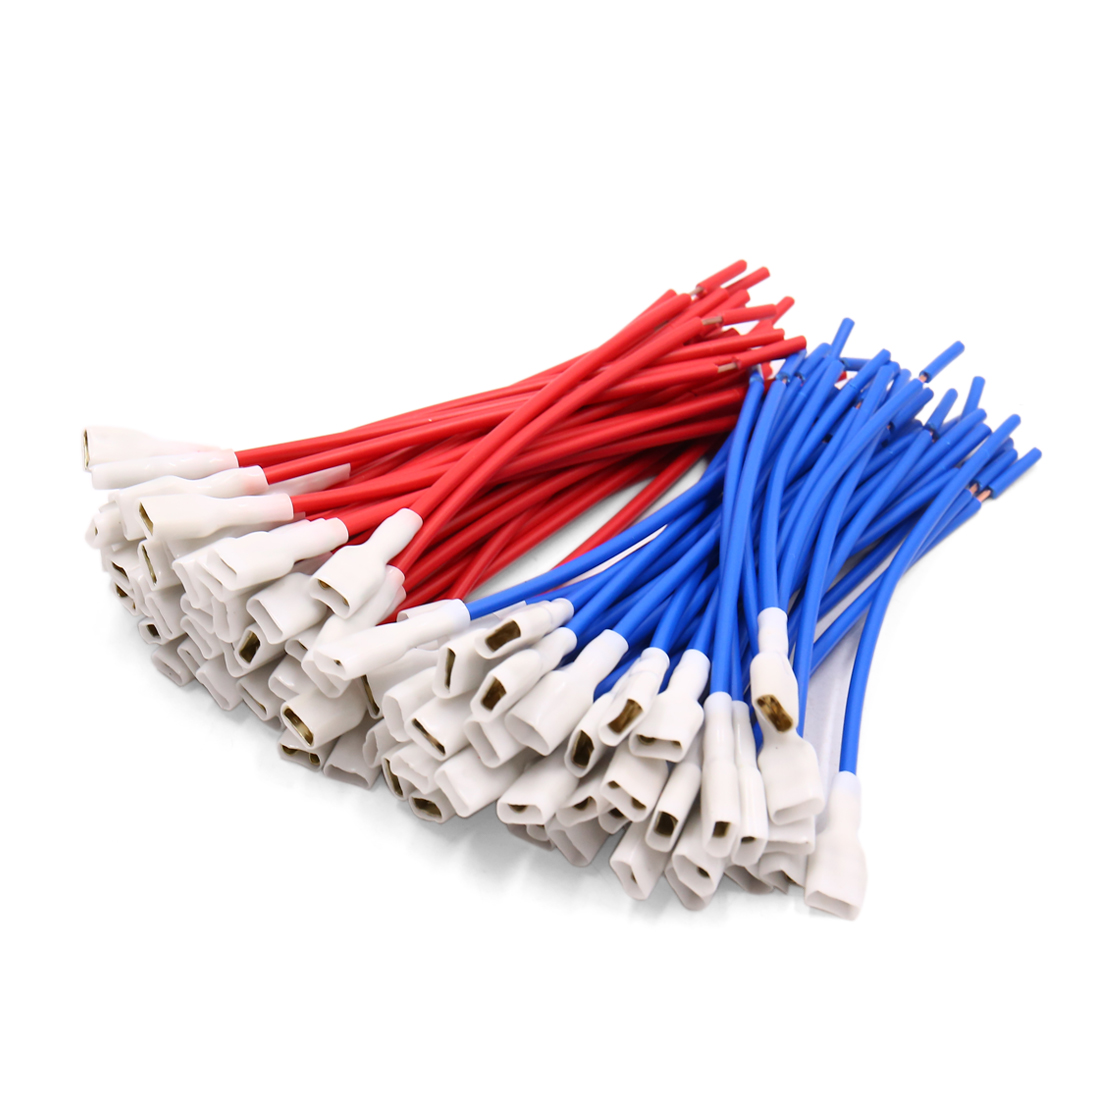 100Pcs Red Blue Car Speaker Wire Female Terminal Adapter Trumpet Cable Connector